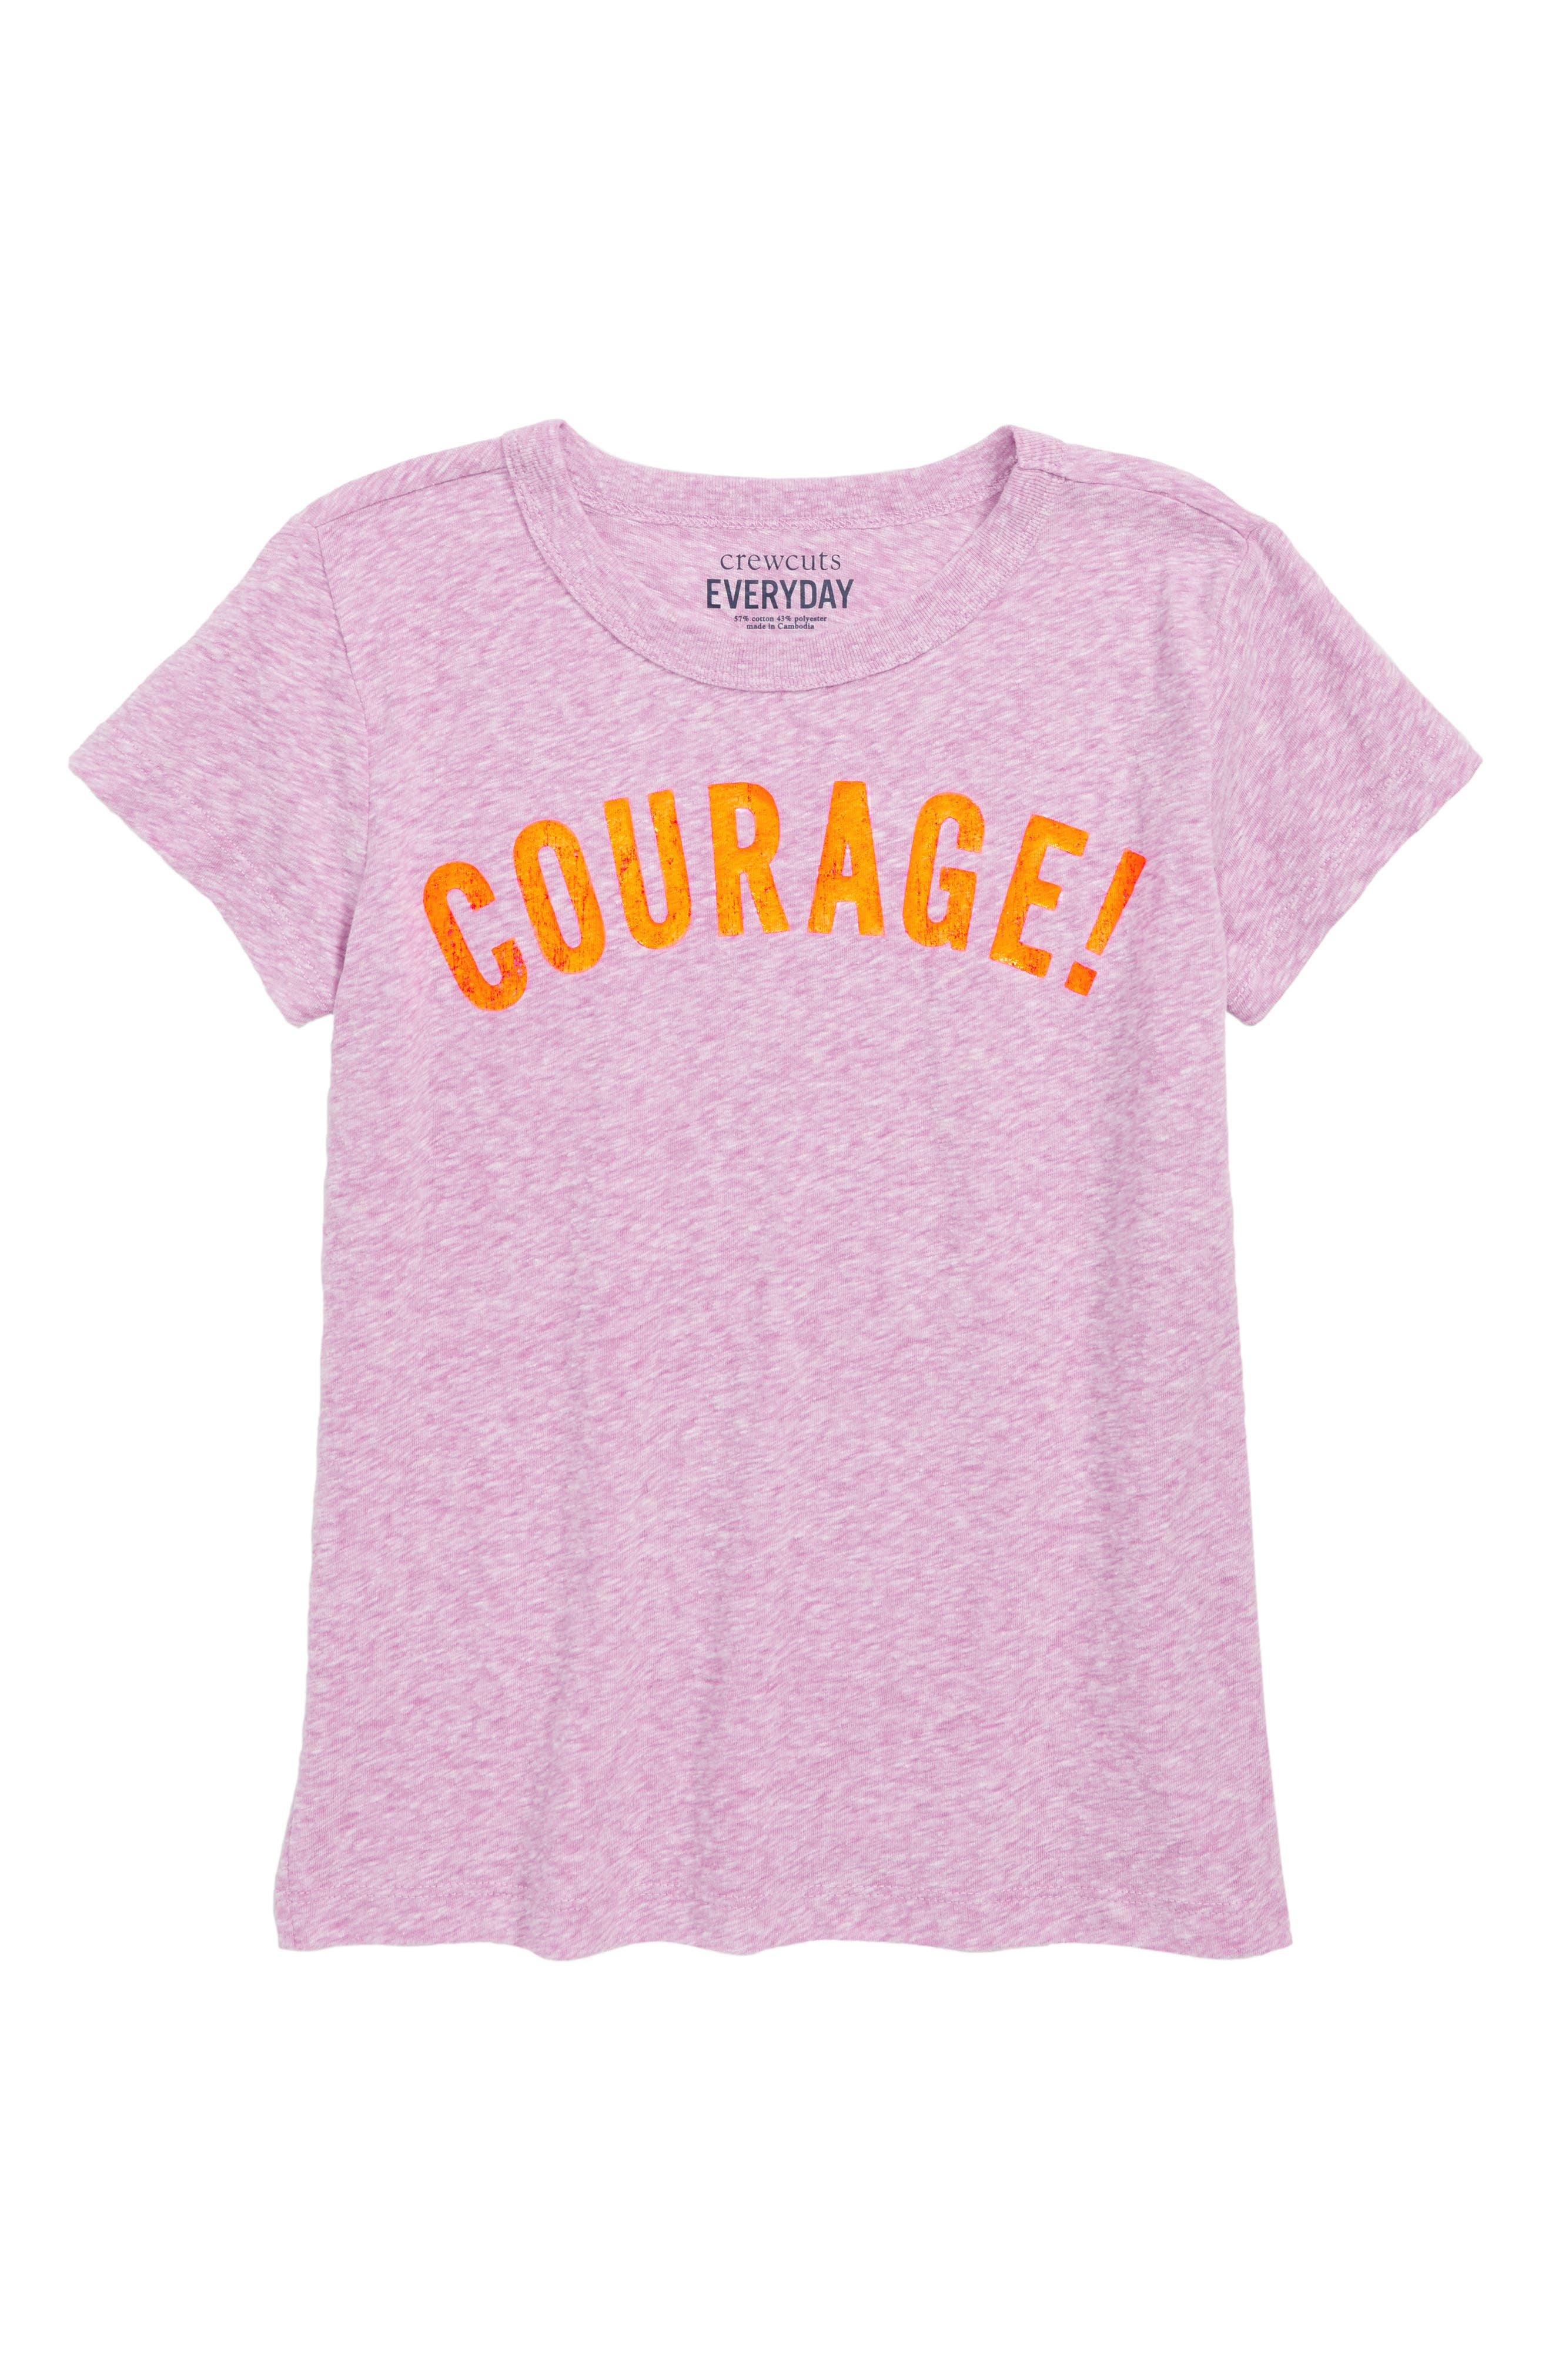 Courage Tee,                             Main thumbnail 1, color,                             500